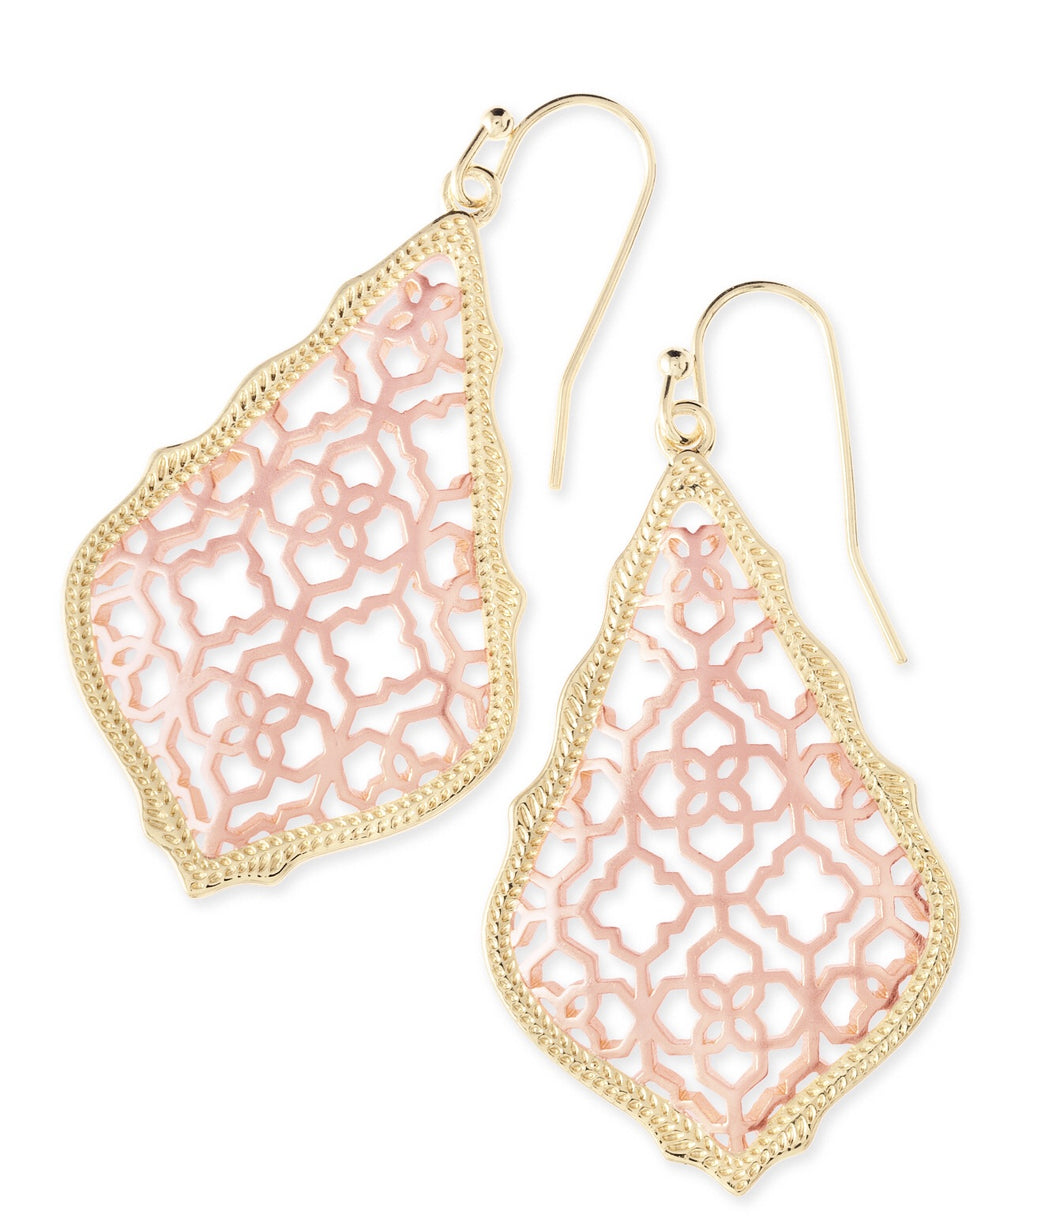 Kendra Scott Rose Gold Filigree Addie Earrings-Gold